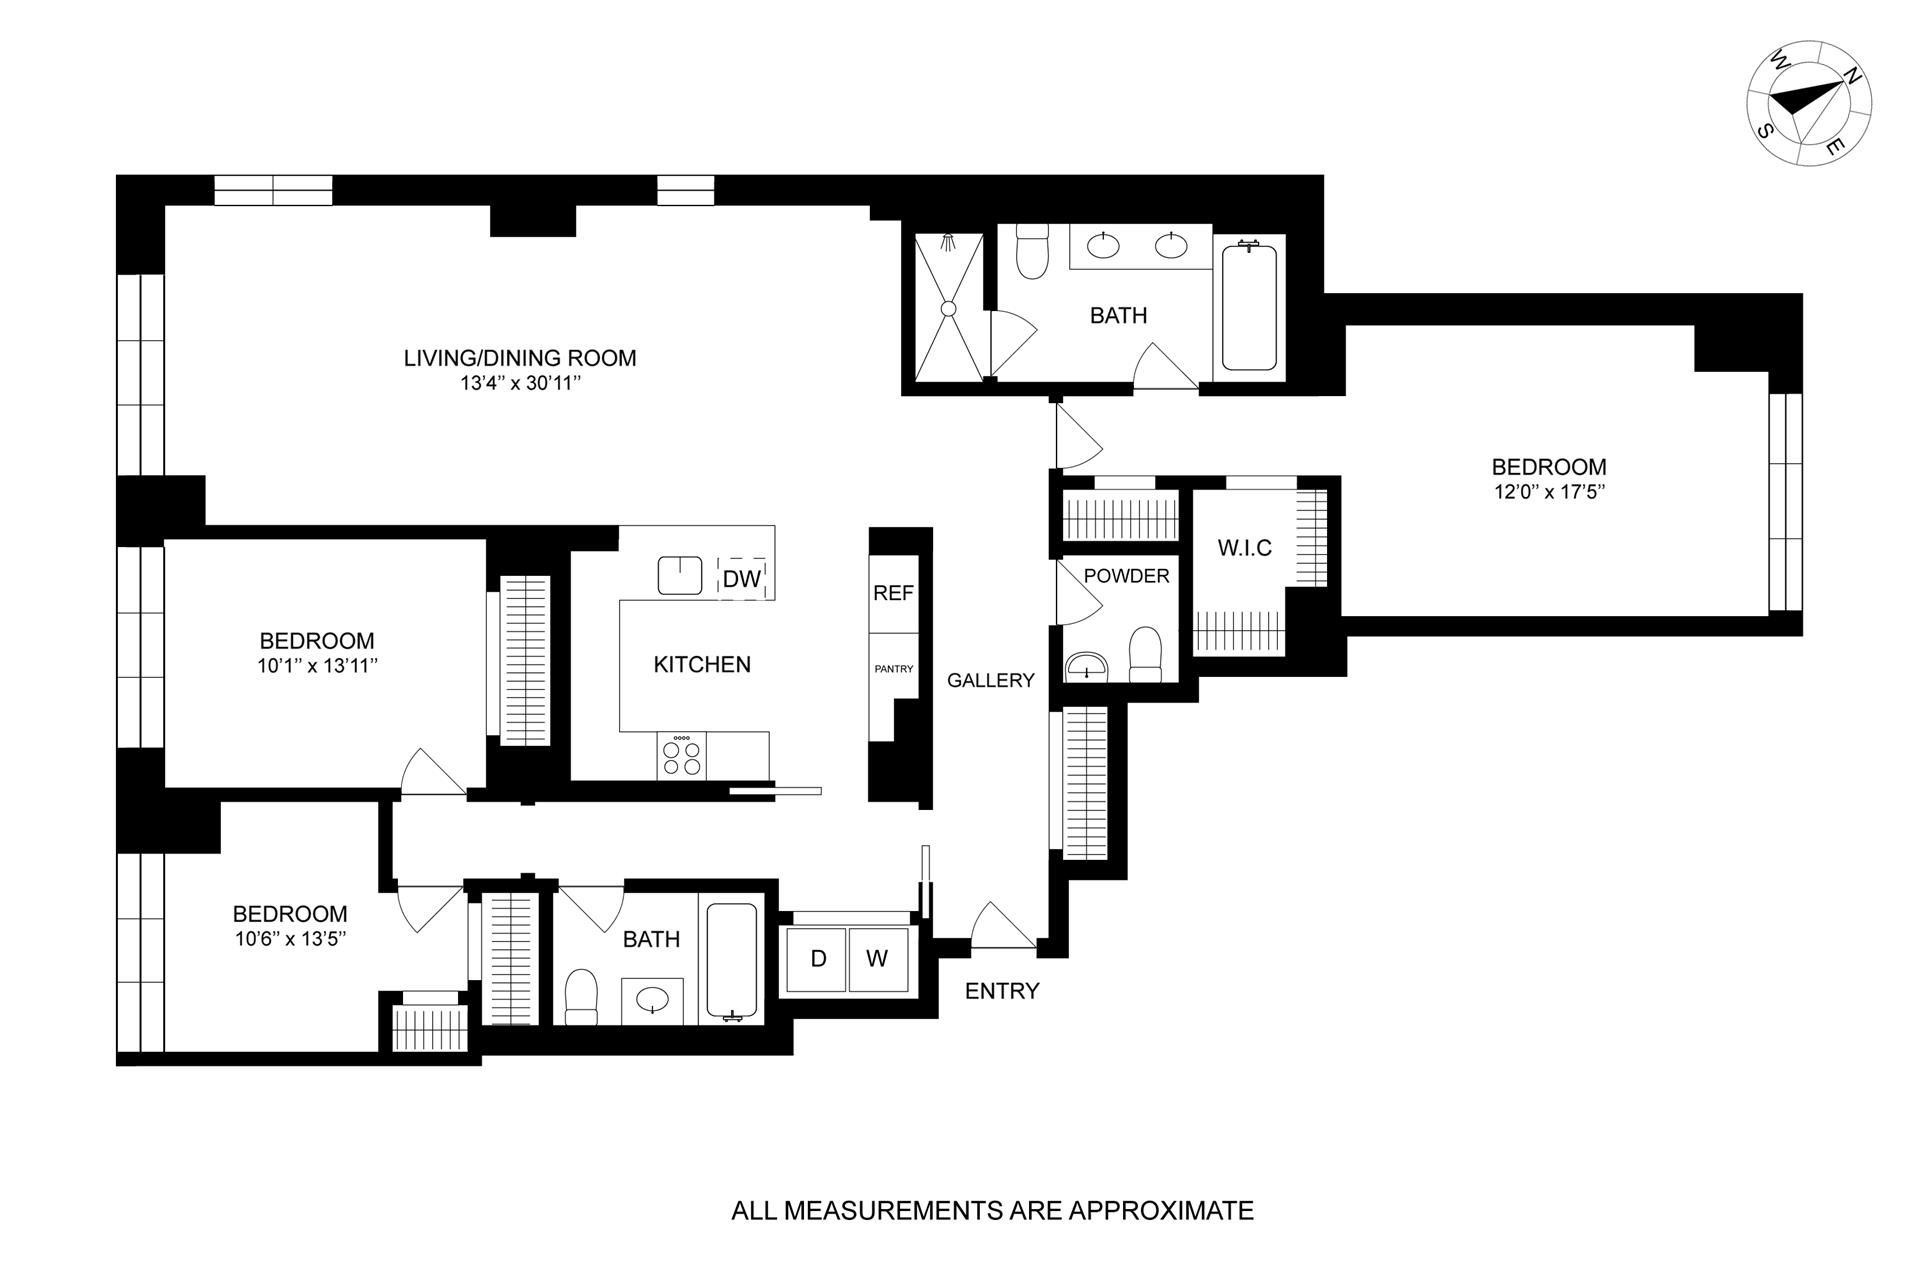 Floor plan of The Seymour, 261 West 25th St, 6D - Chelsea, New York